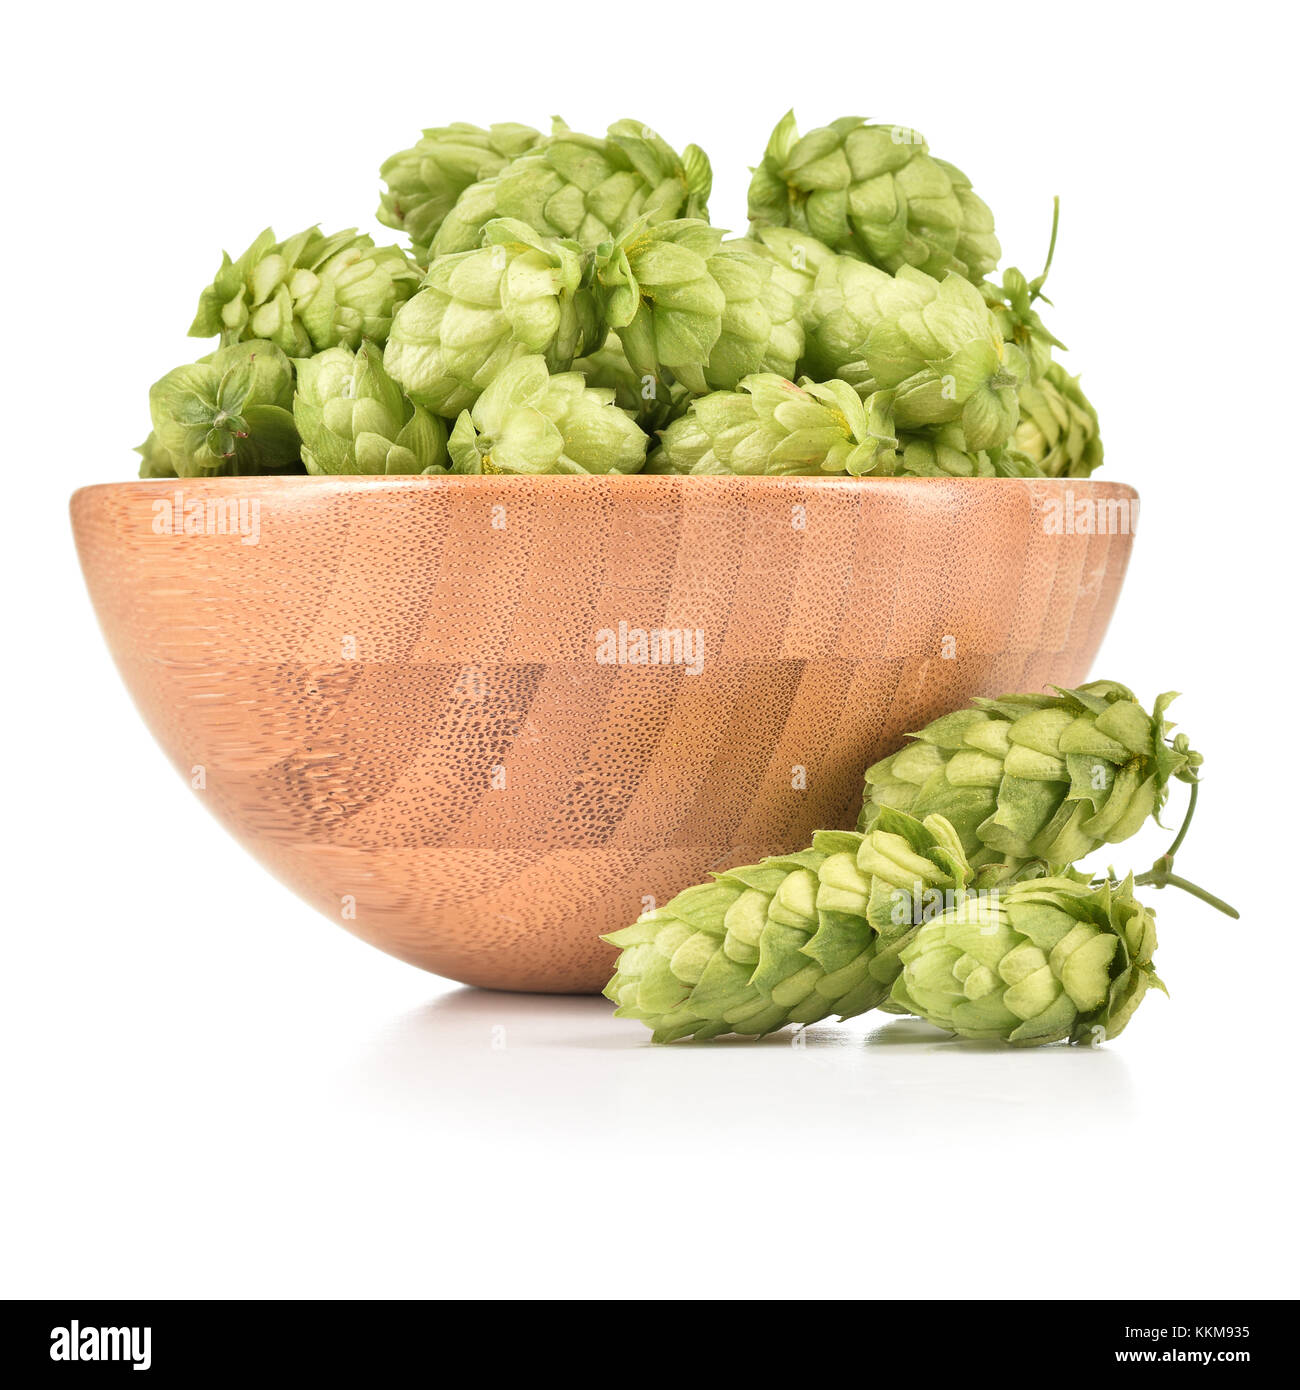 Fresh hops (Humulus lupulus) in wooden bowl isolated on white background. Pile of hops, ingredient for brewery industry. - Stock Image